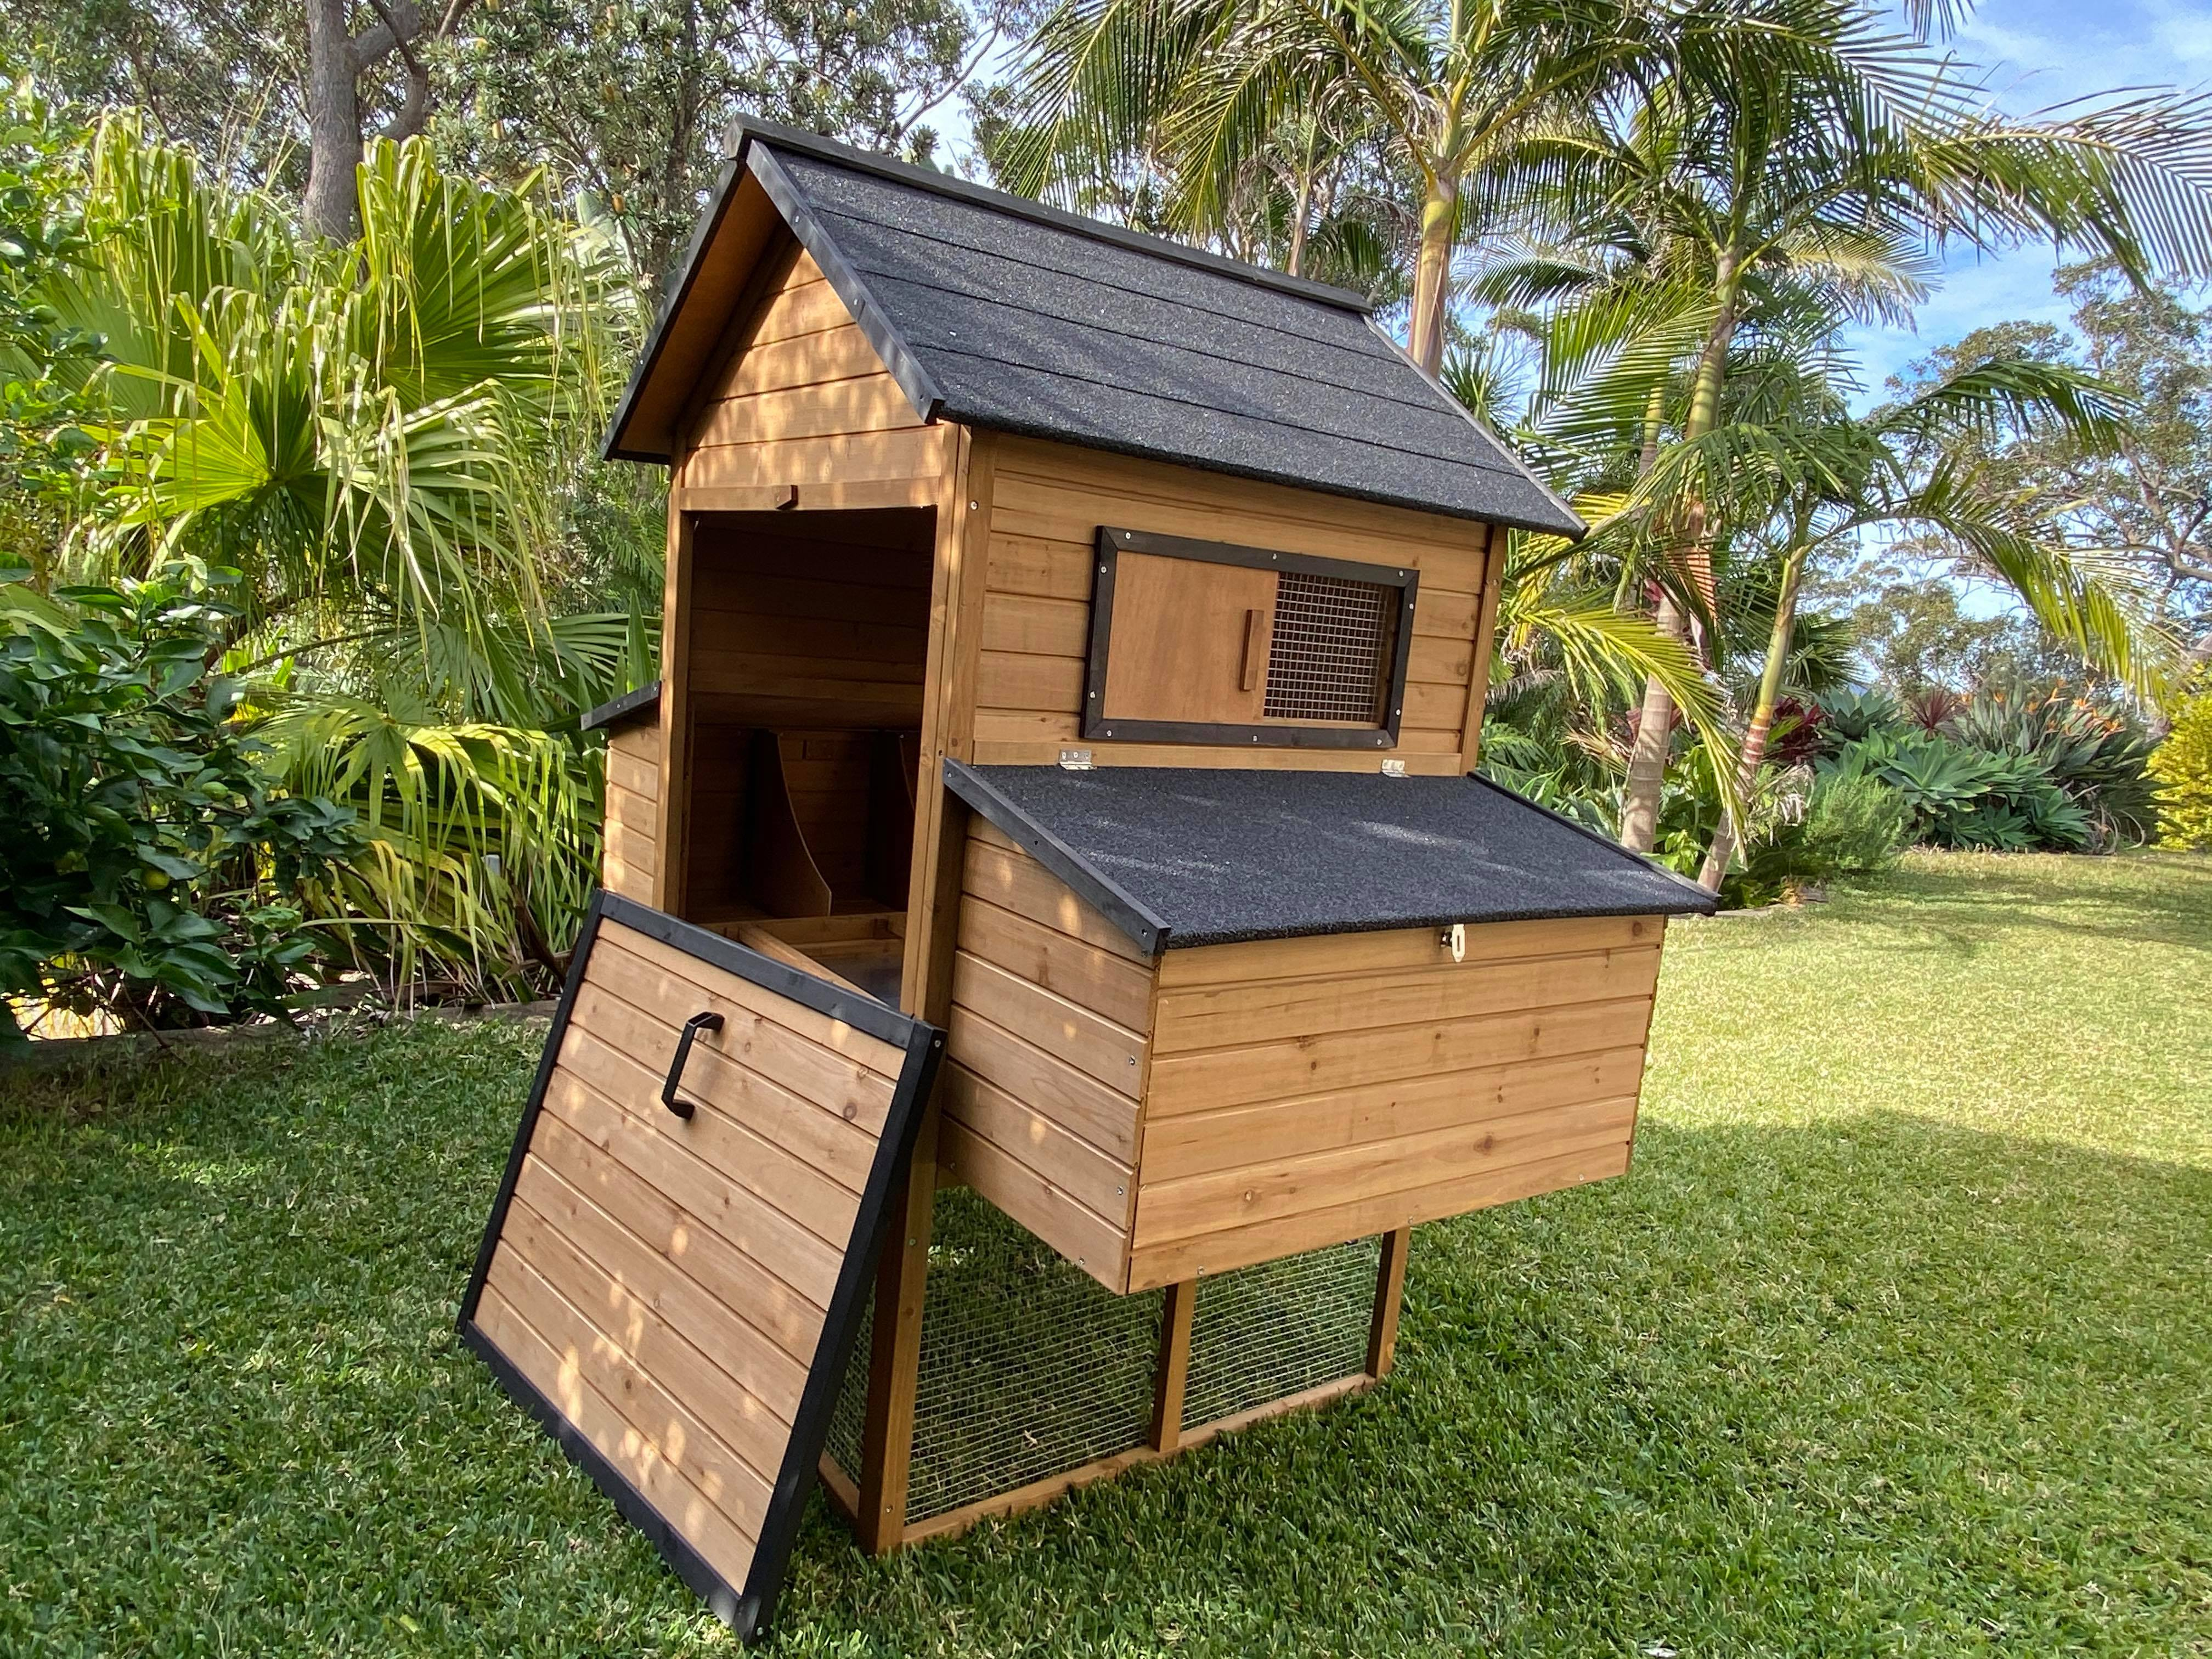 Cabana Chicken Coop with easy access for cleaning gallery image